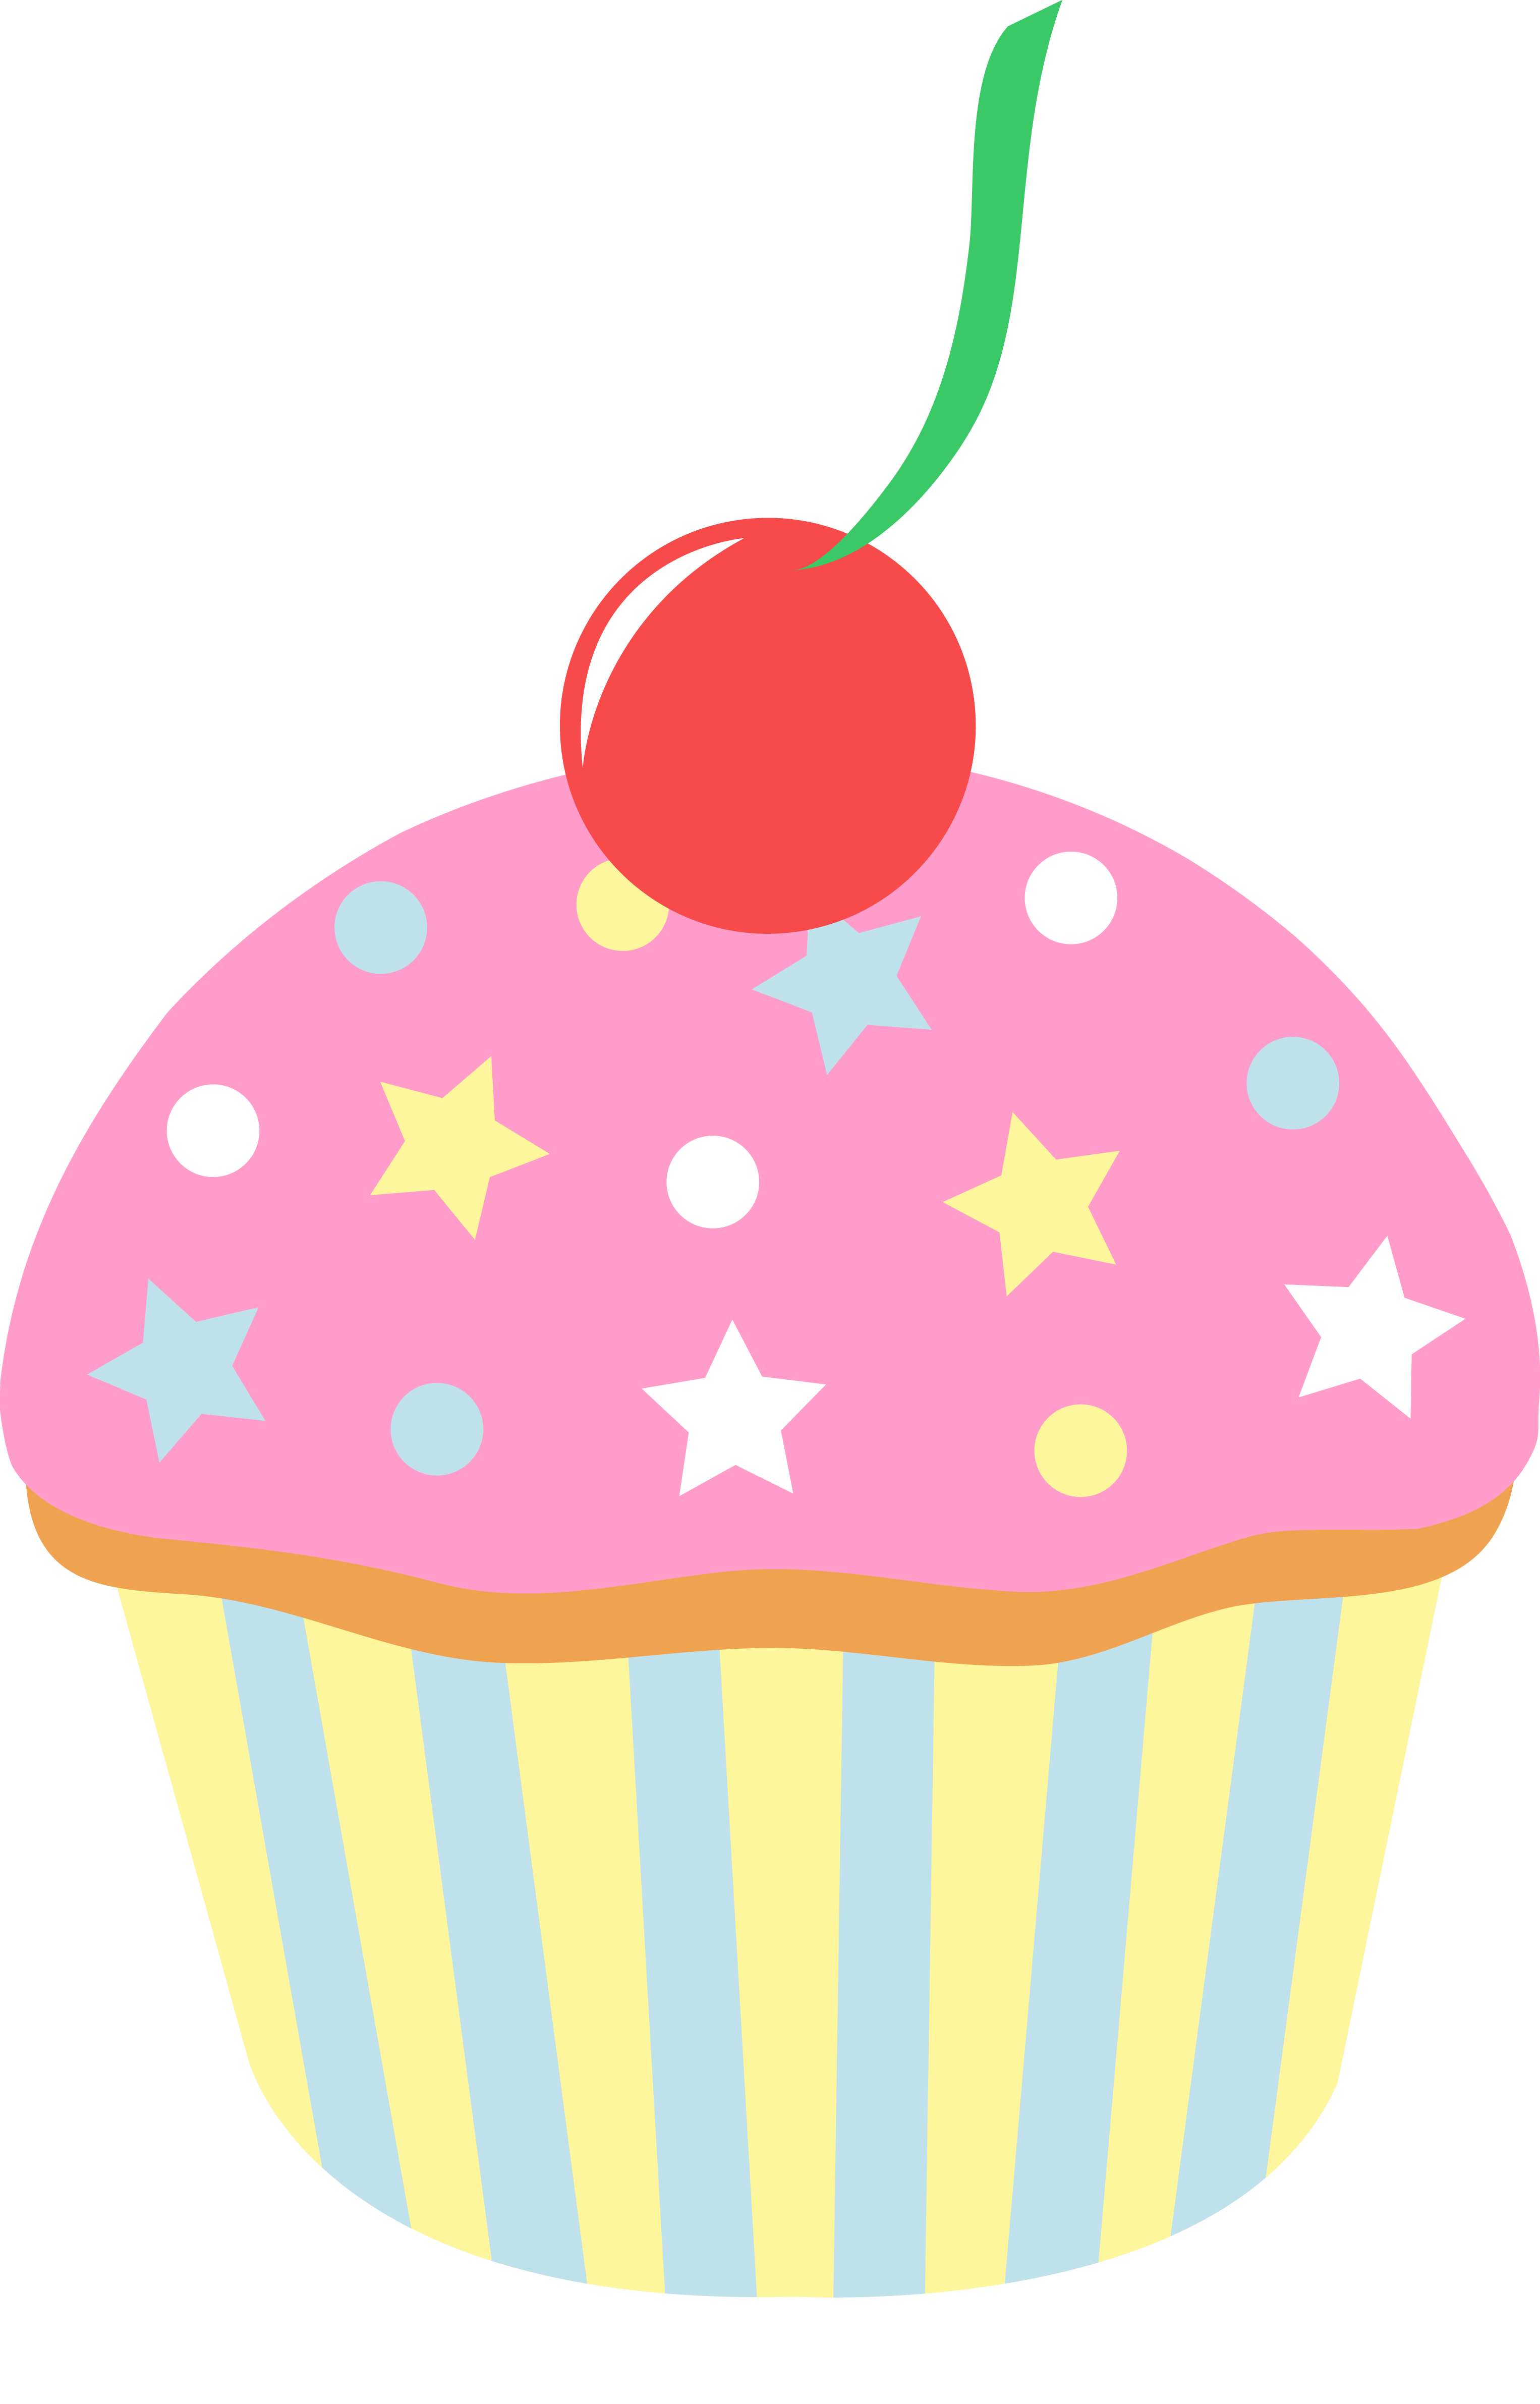 Pink Cupcakes With Sprinkles | Clipart Panda - Free Clipart Images